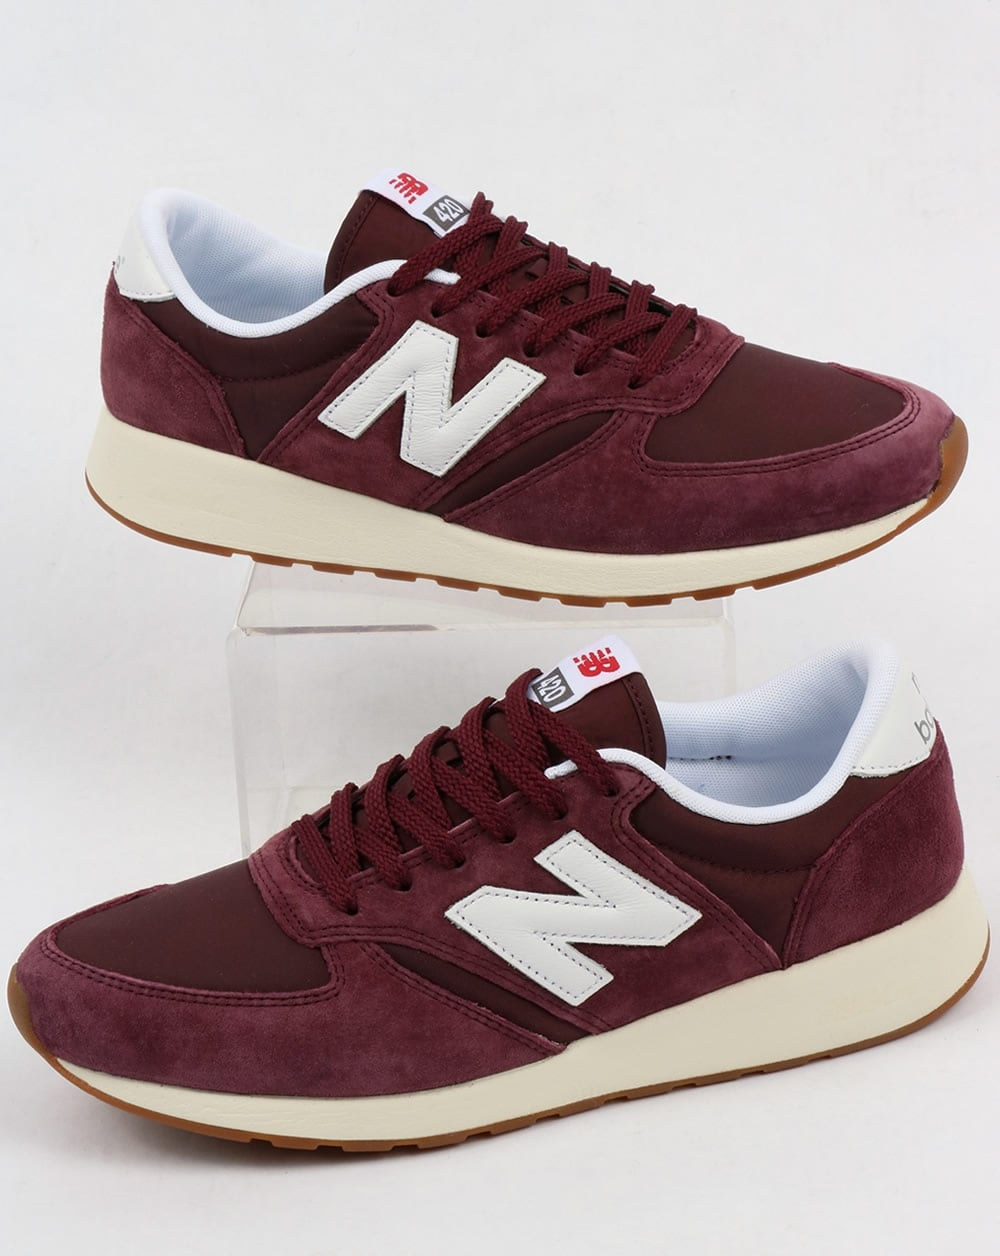 new balance 420 re engineered suede trainers burgundy white shoes running 70s. Black Bedroom Furniture Sets. Home Design Ideas